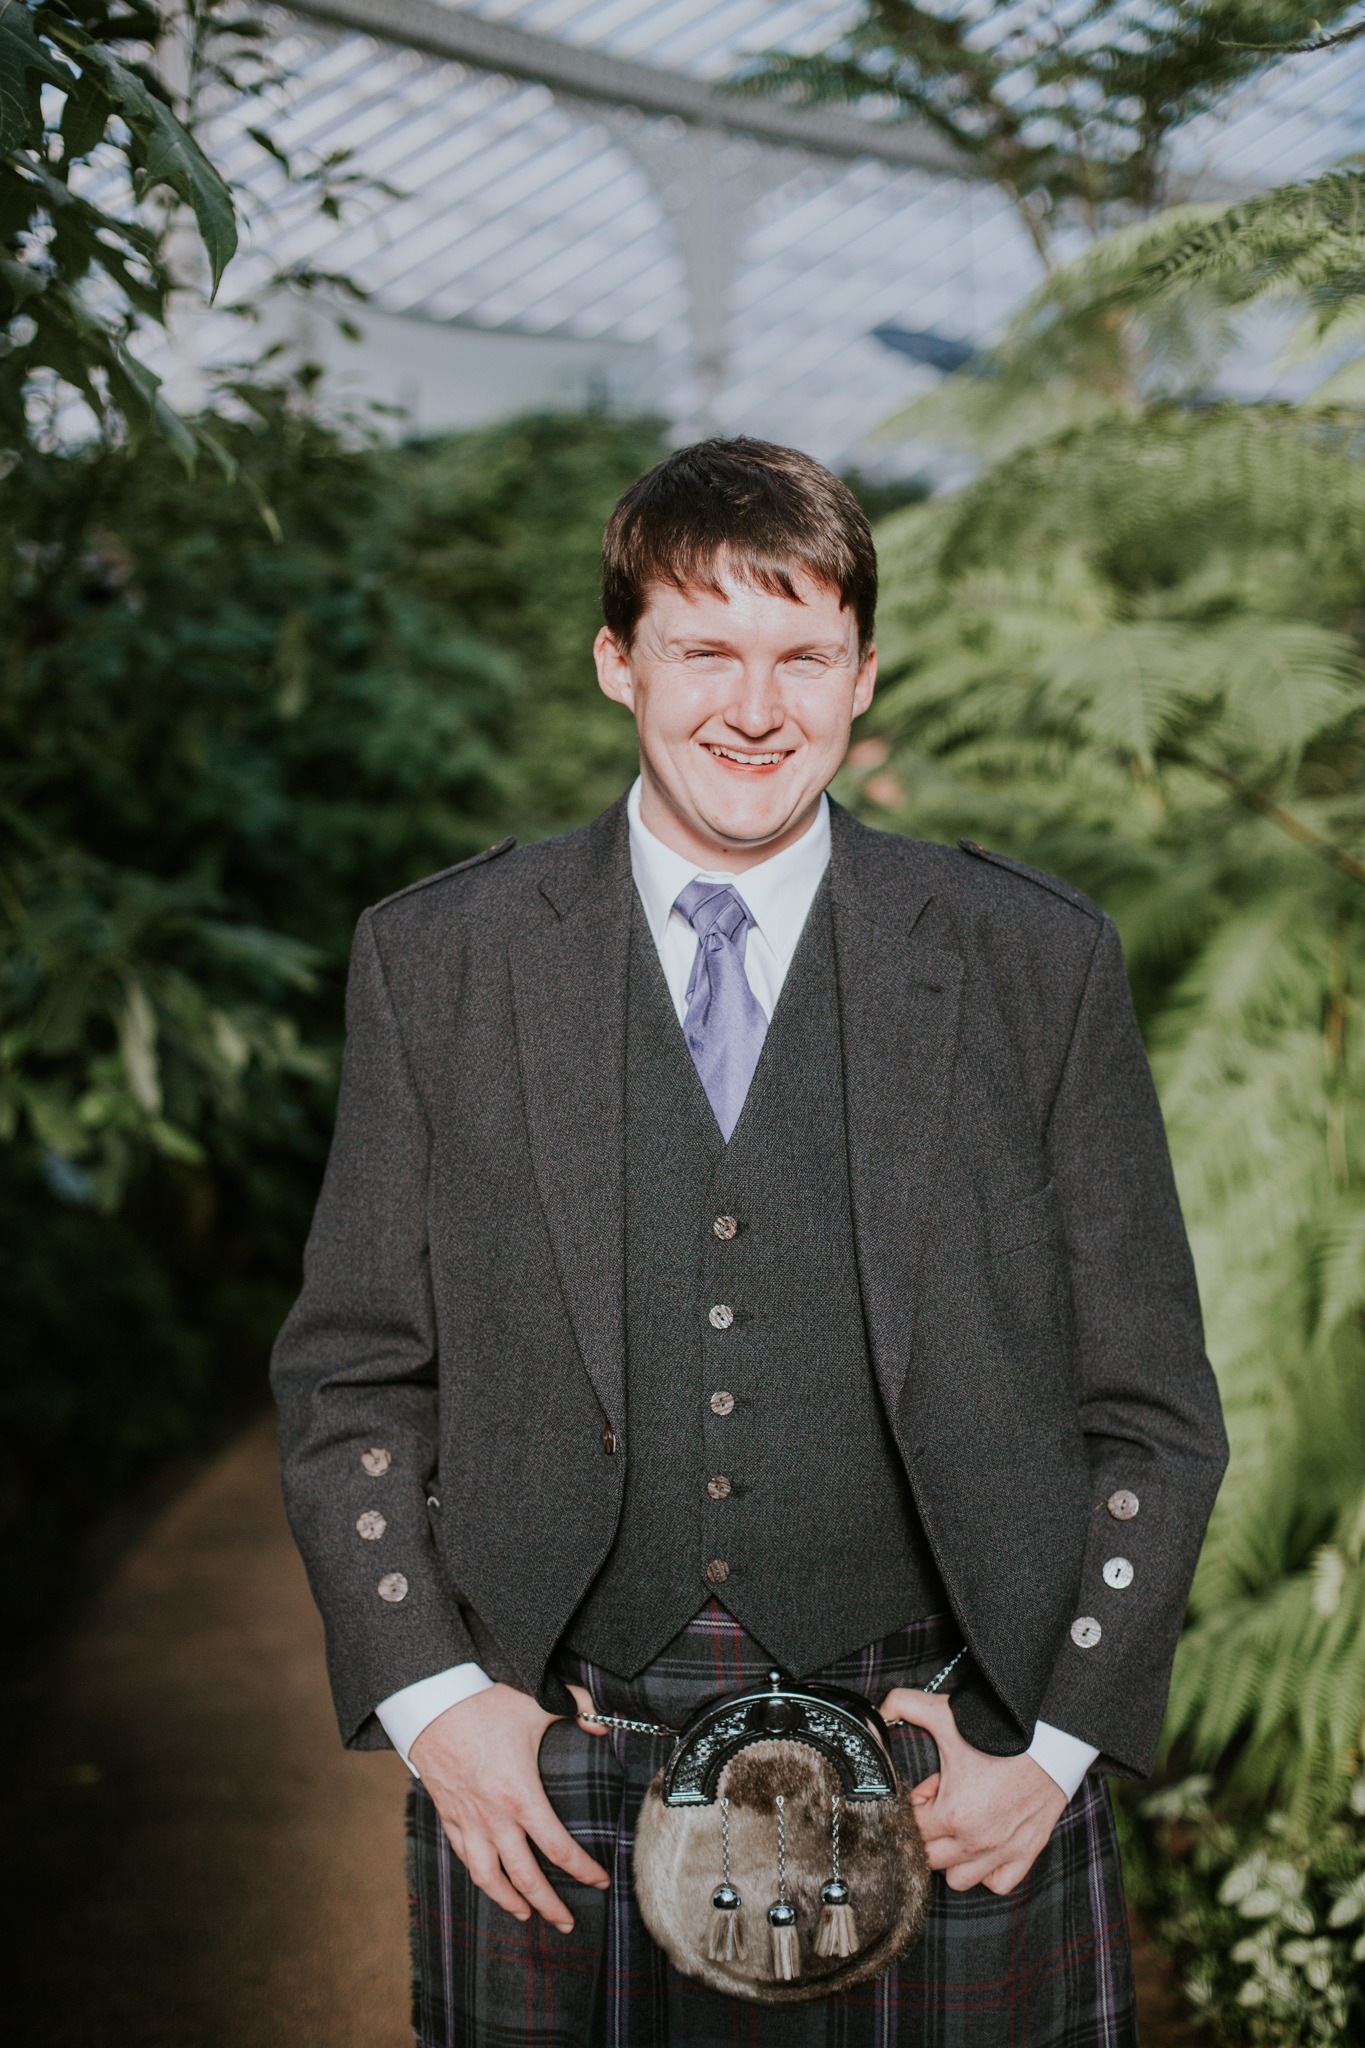 Groom's portrait at the Botanic Gardens in Glasgow